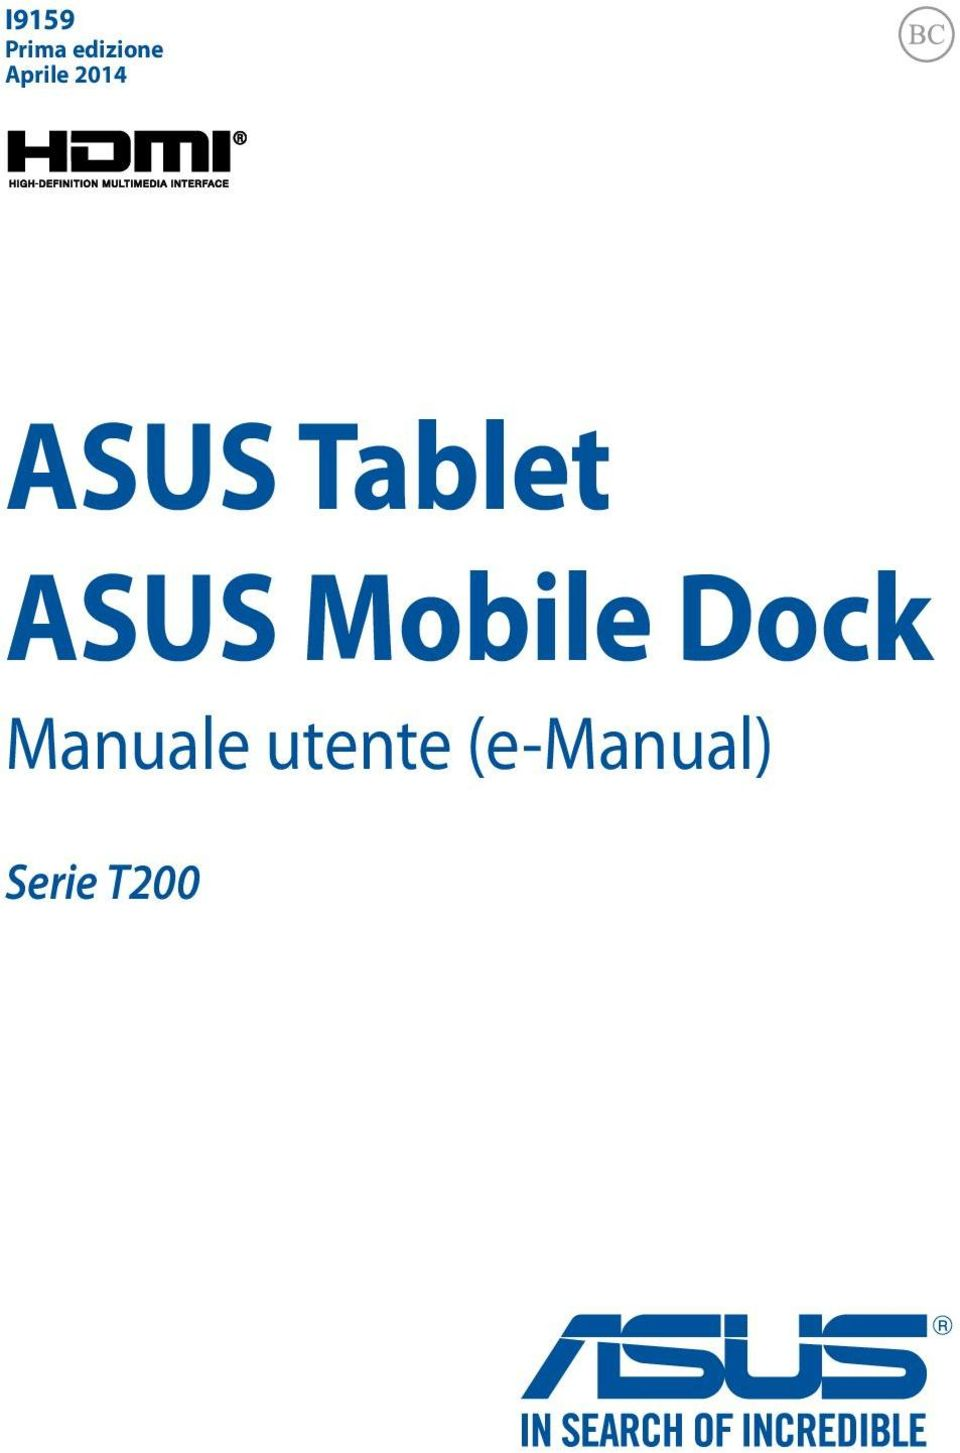 ASUS Mobile Dock Manuale